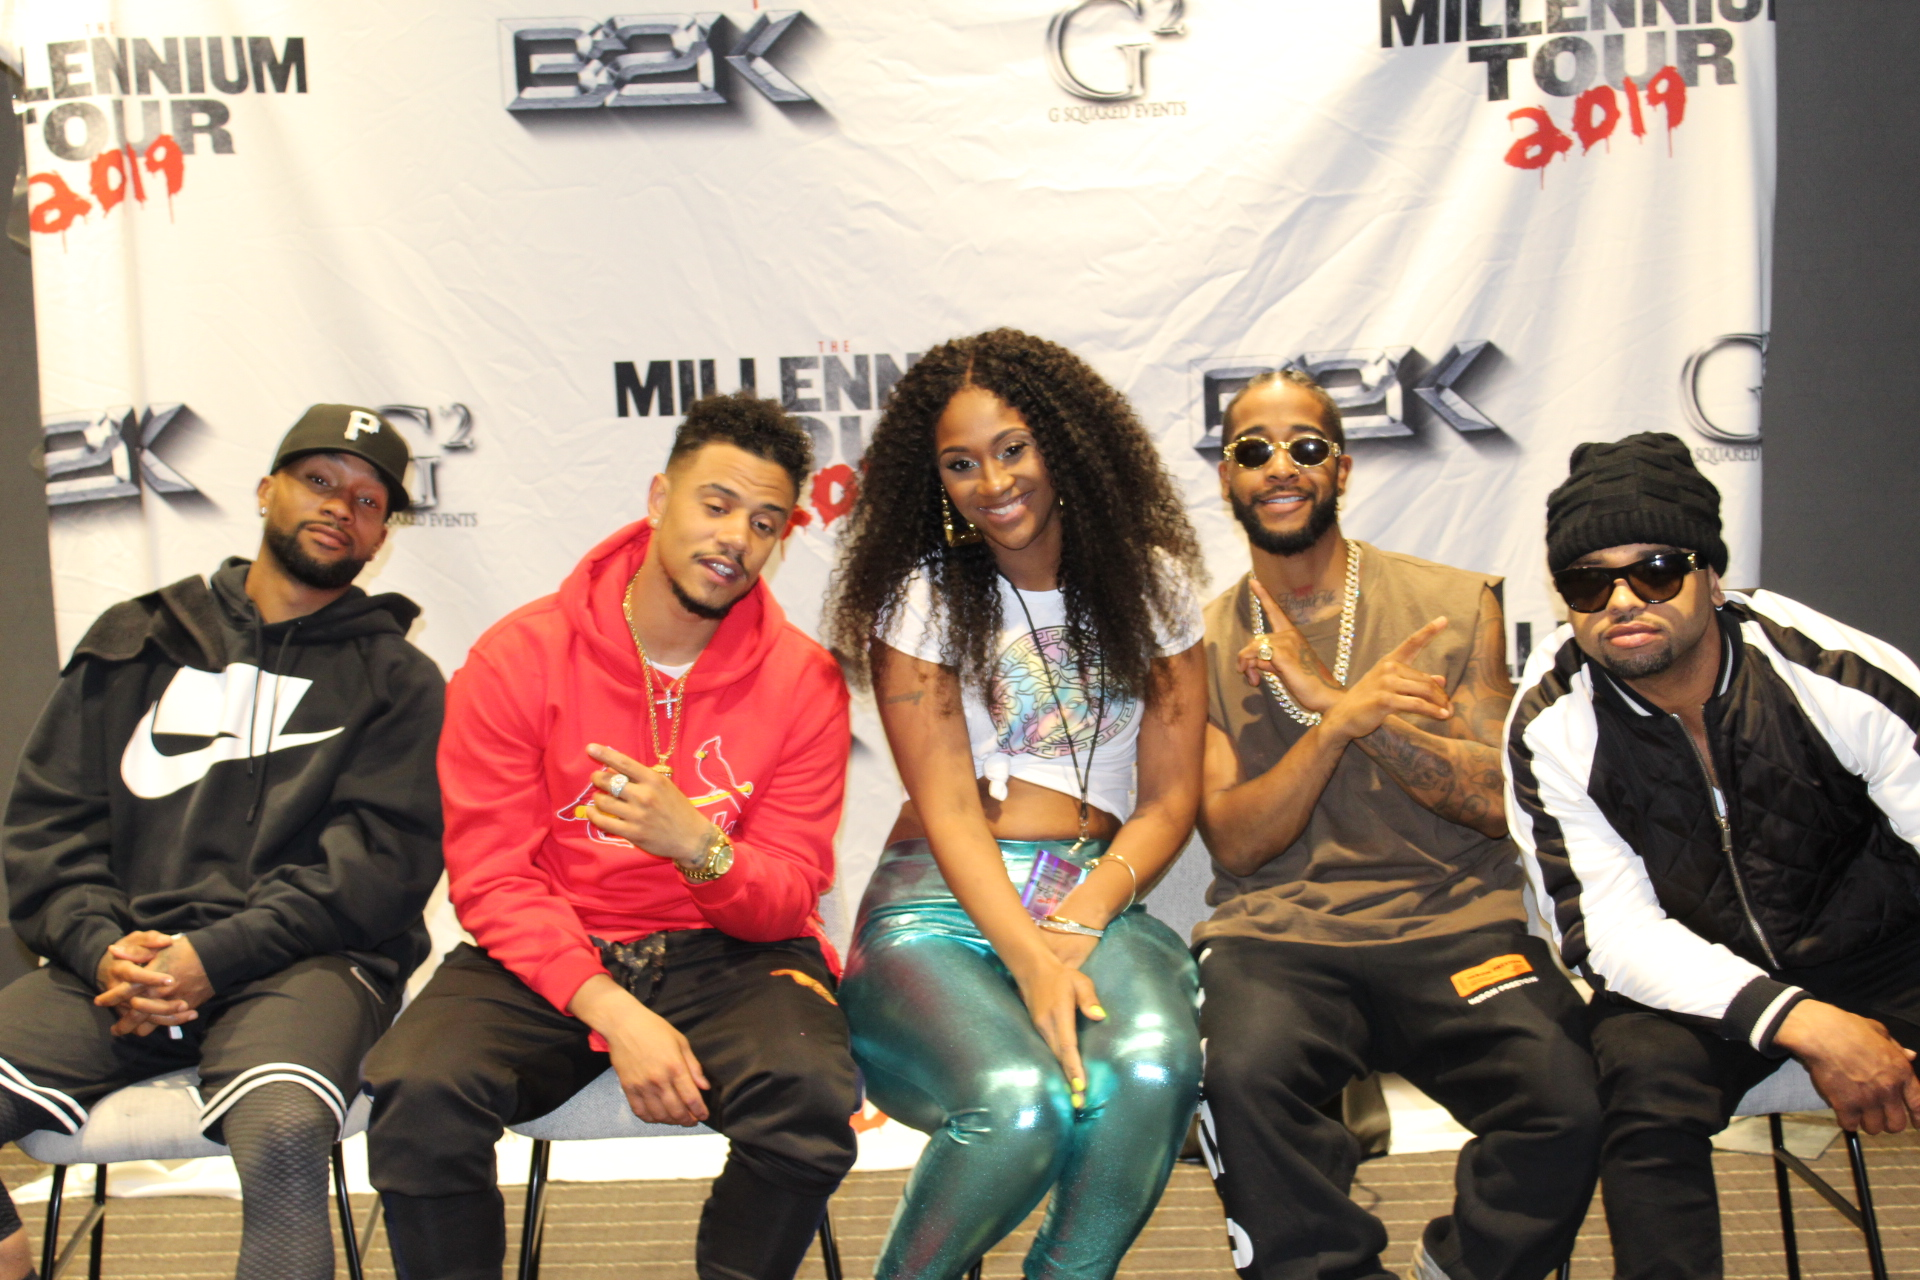 B2K Millinium Tour Meet & Greet Photos